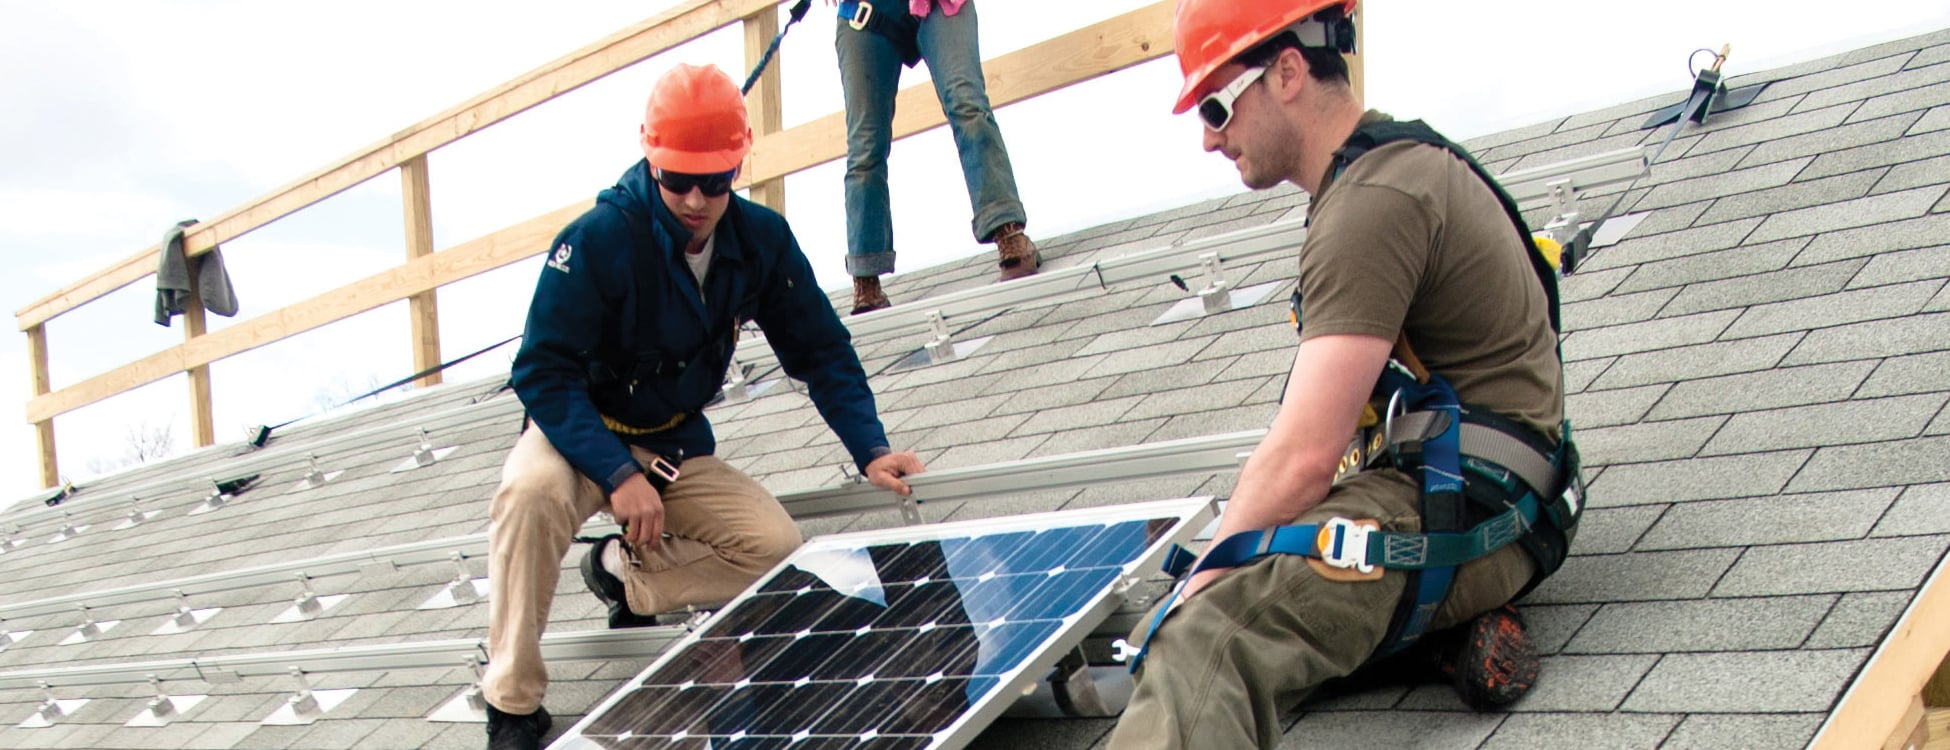 students installing solar panels, laboratory, hands on, renewable energy